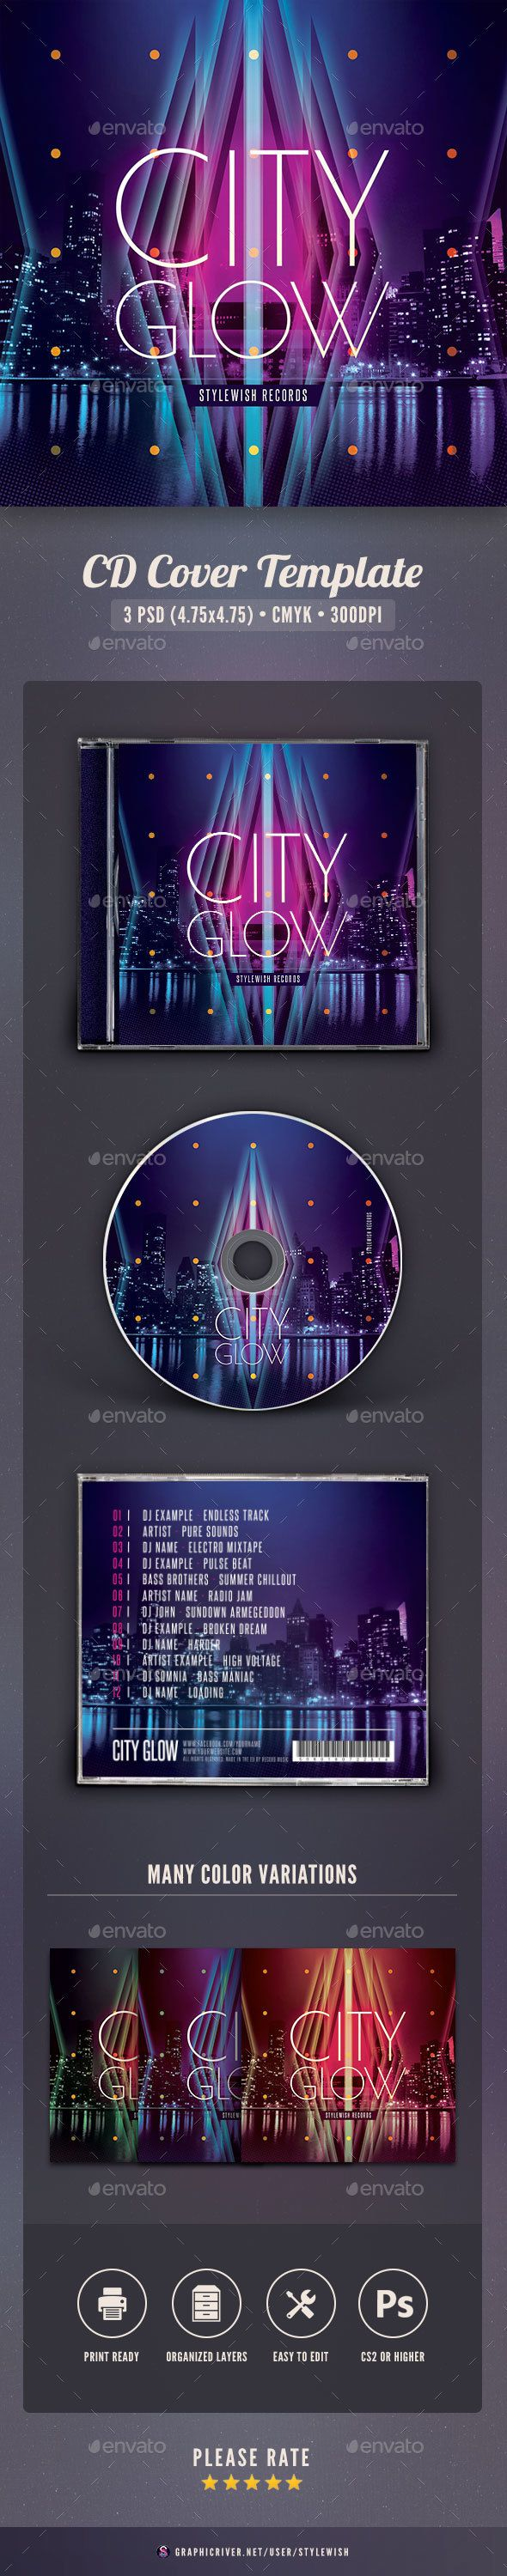 City Glow CD Cover Artwork — Photoshop PSD #dark #glow • Available here → https://graphicriver.net/item/city-glow-cd-cover-artwork/16116043?ref=pxcr